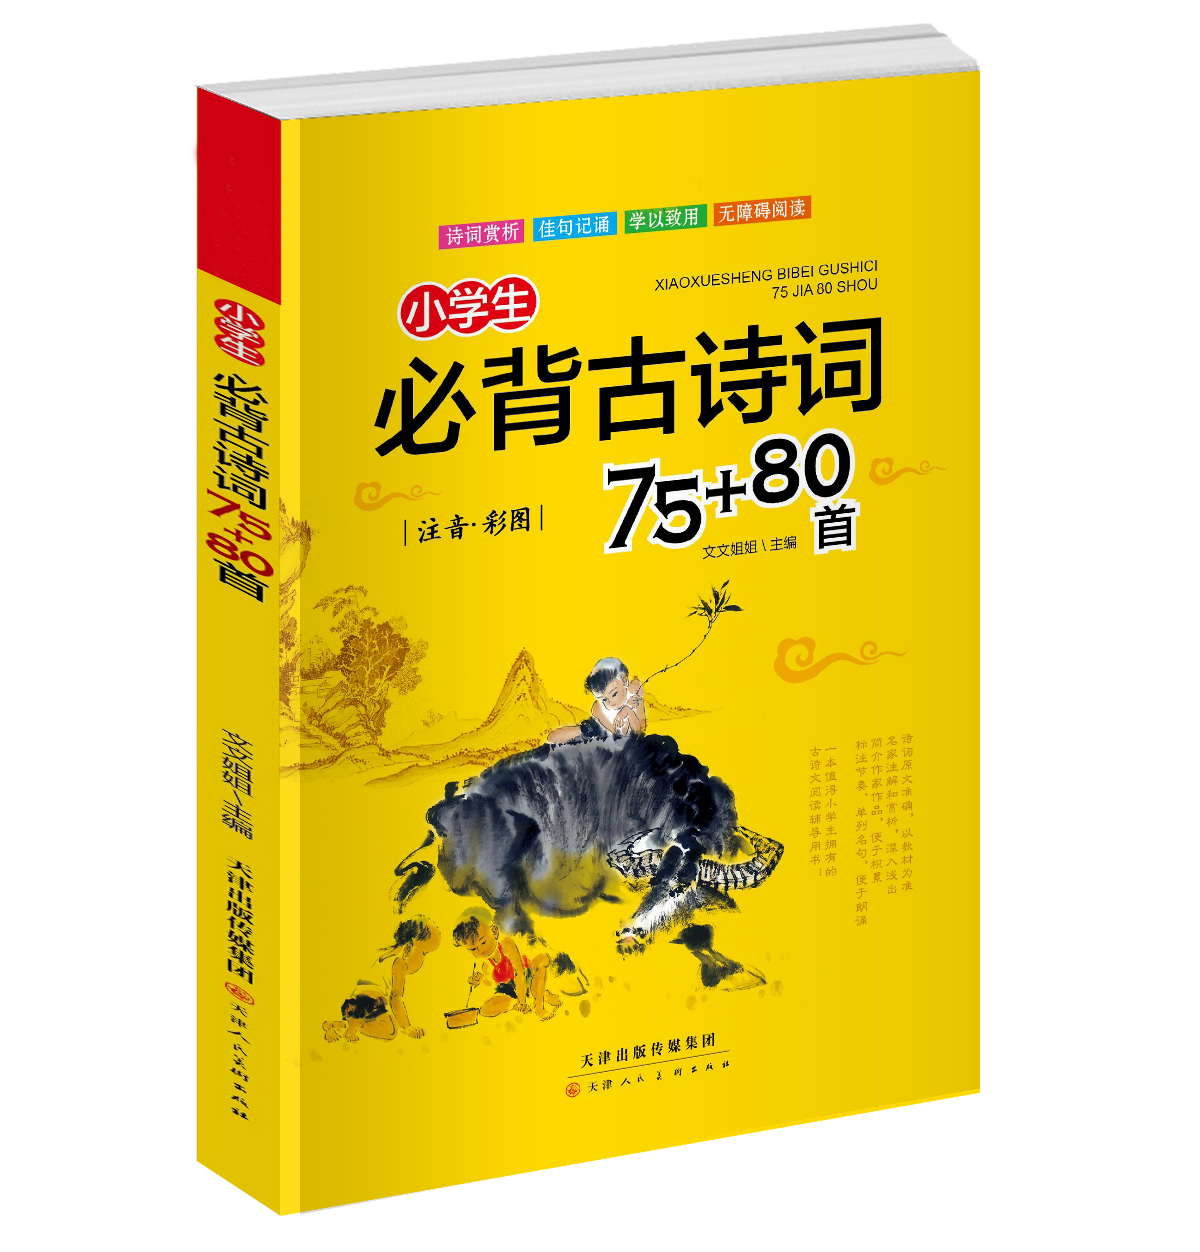 75+80 Ancient Poetry Pinyin Book for Students Chinese First Grade Book  Educational Story Books for Children